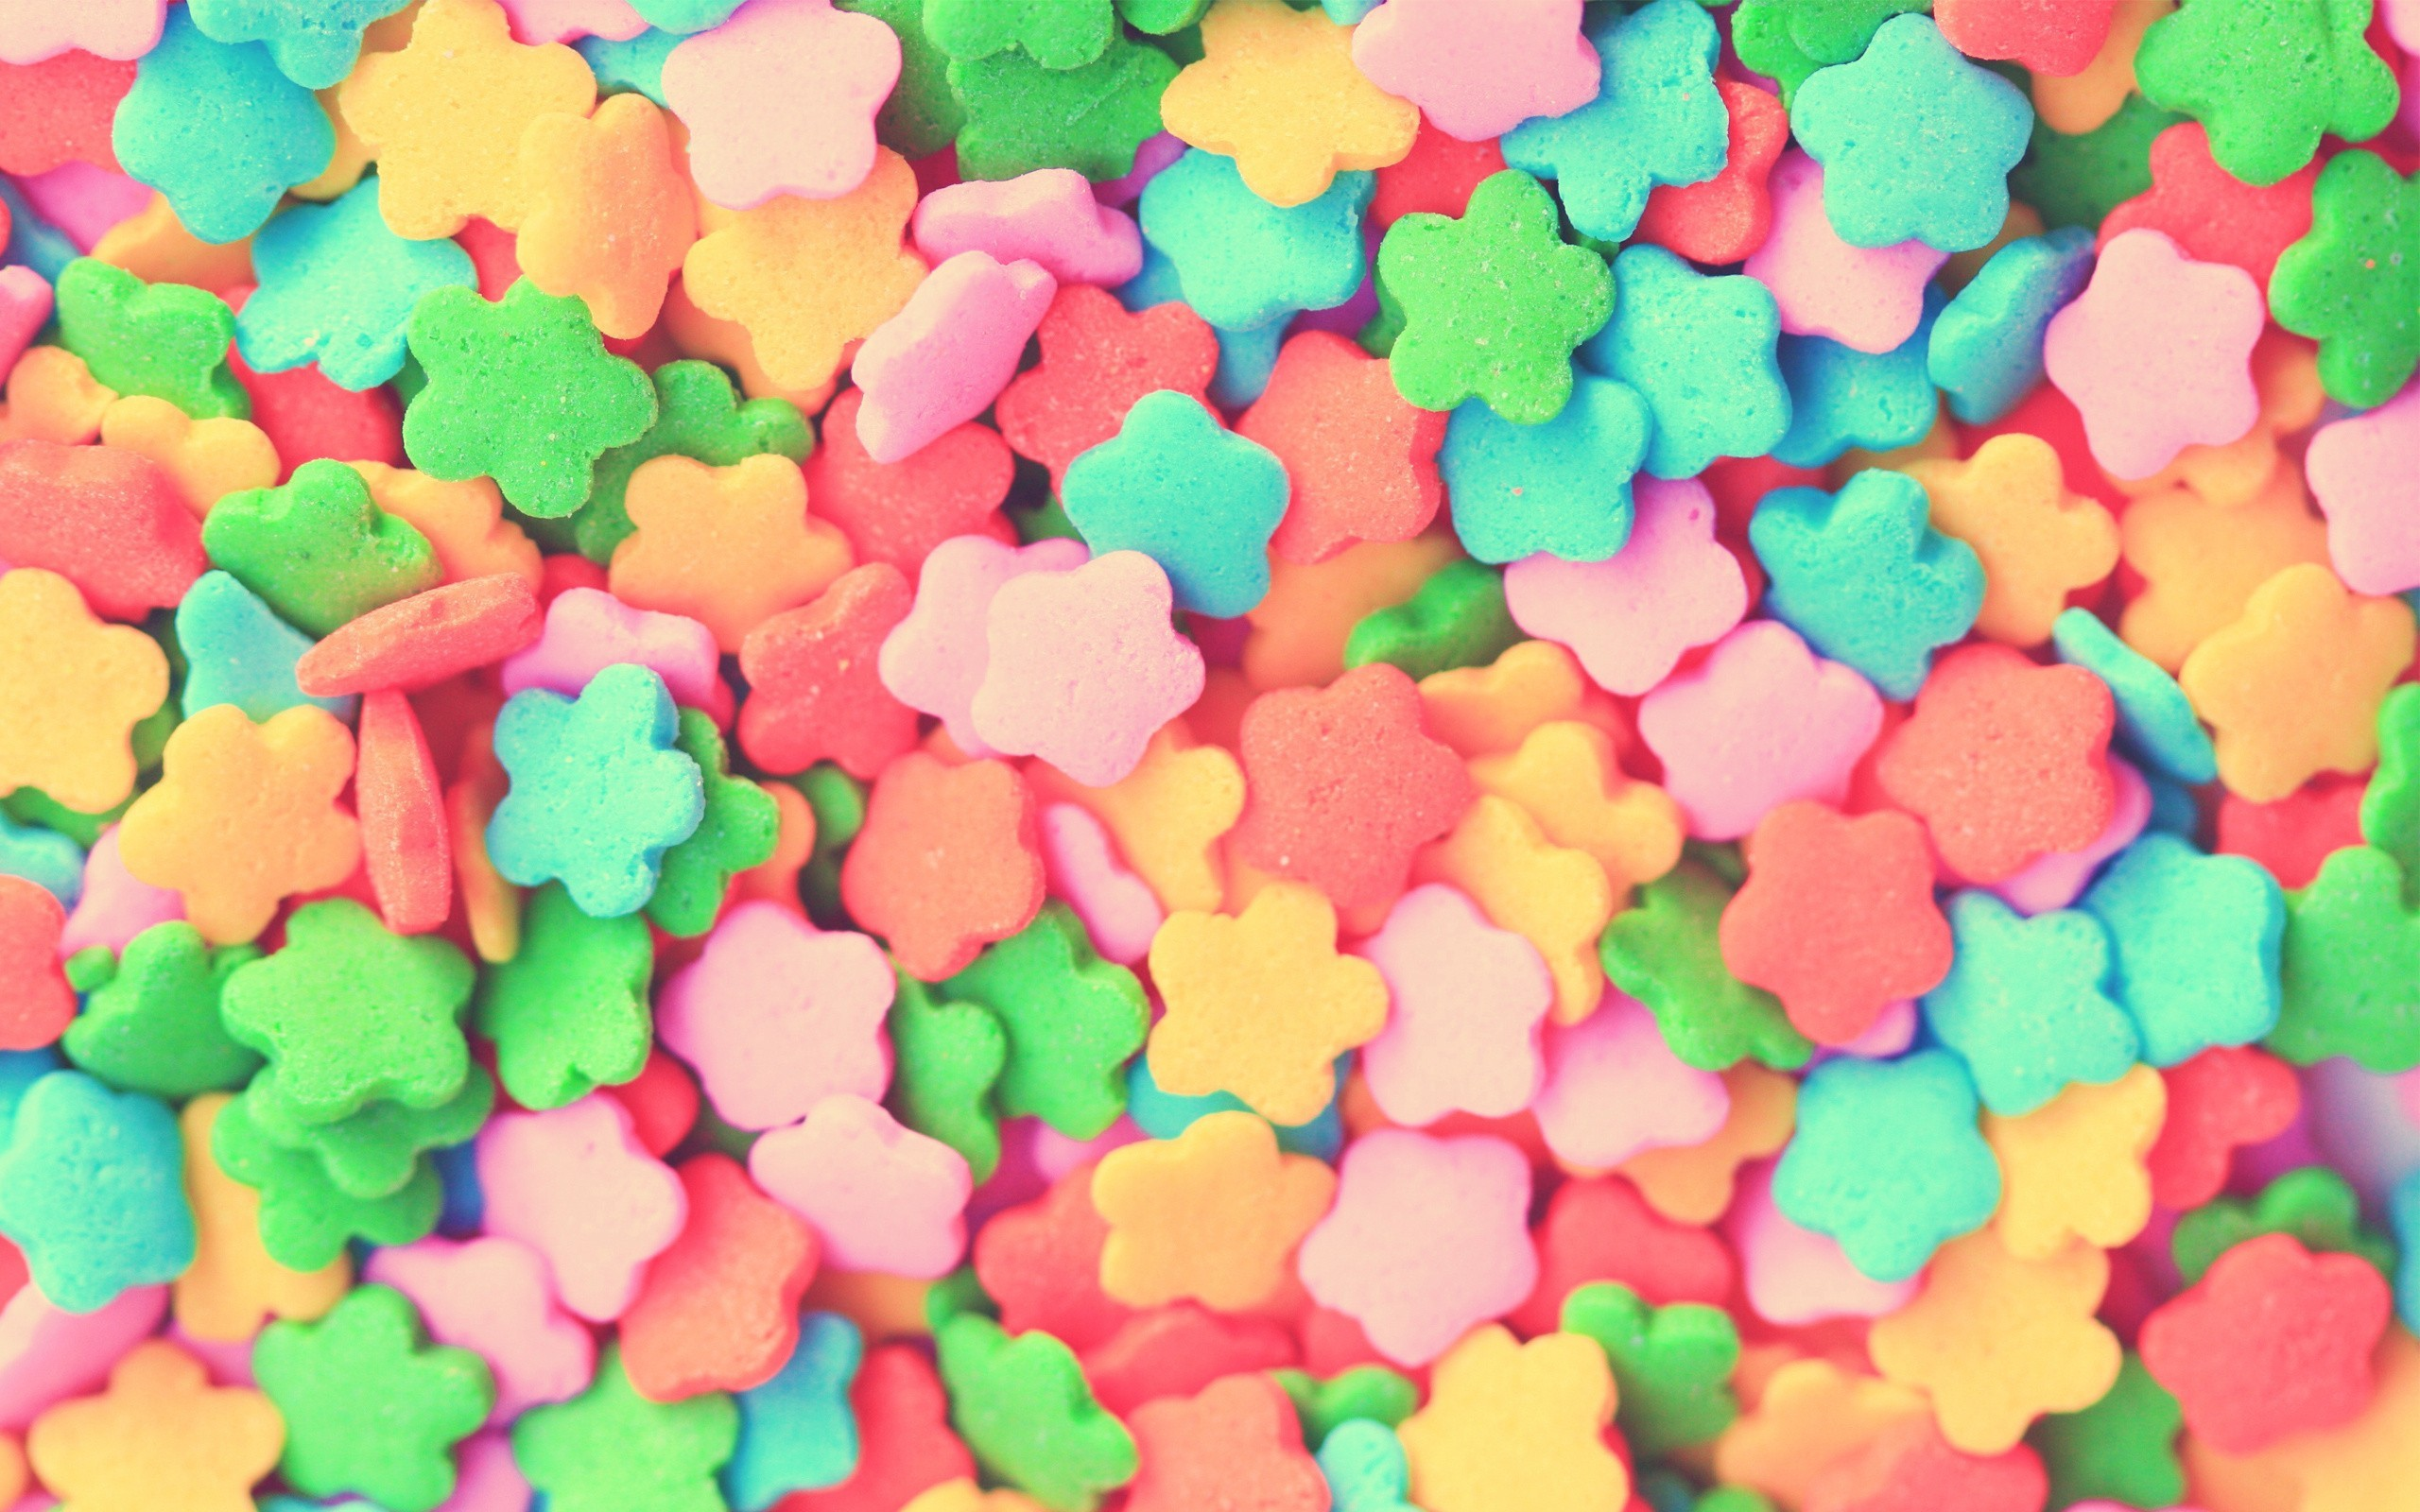 1920x1080 Candy Images #1023038